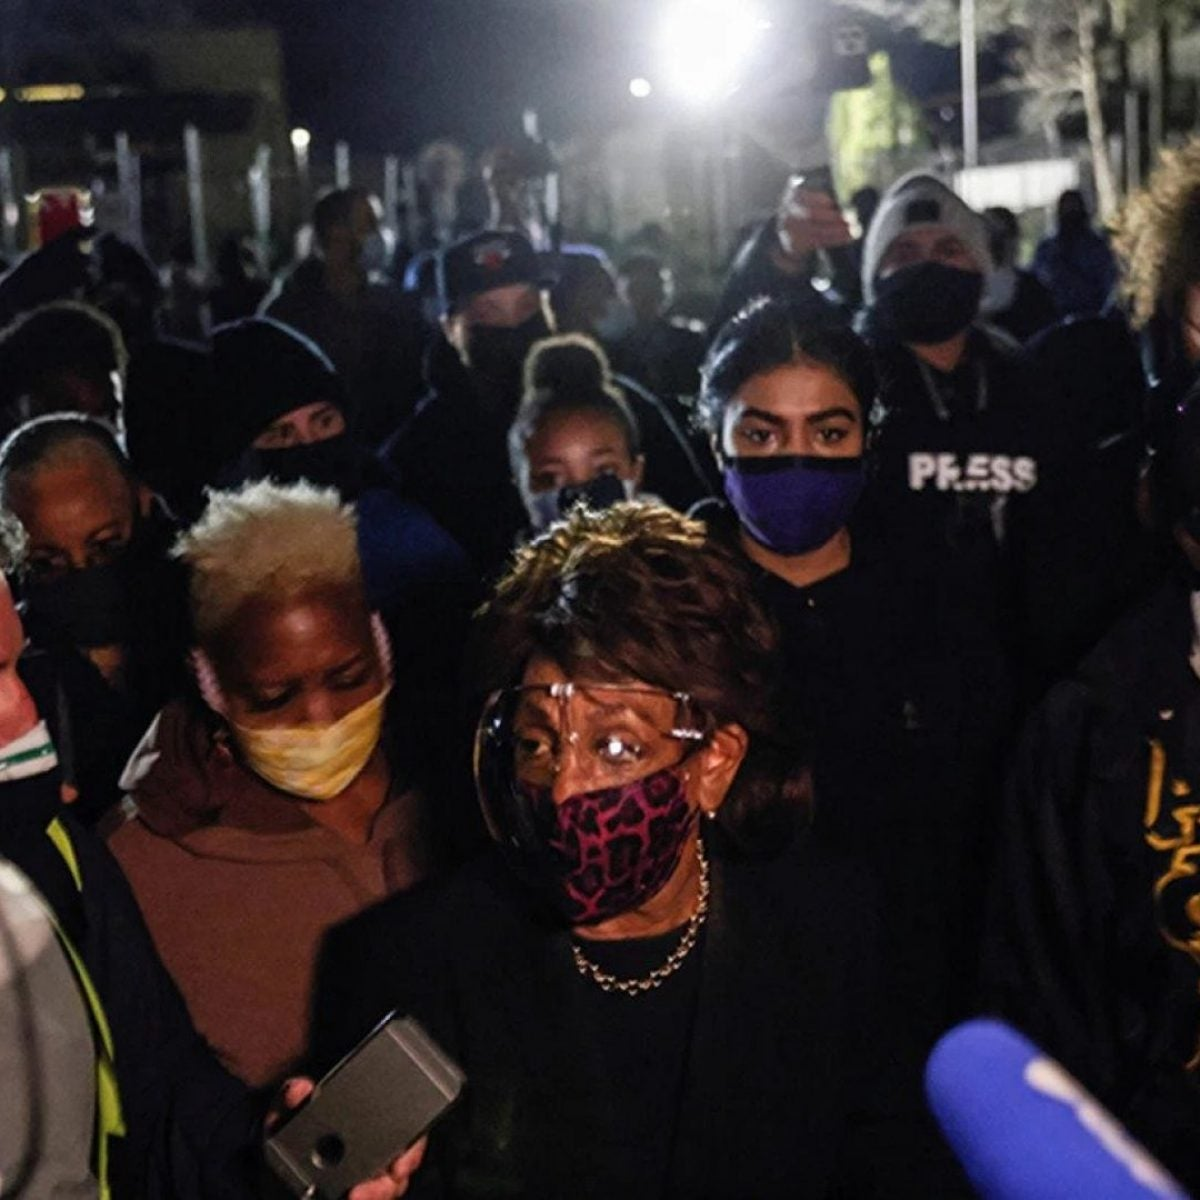 GOP Critics Call to Expel Maxine Waters from Congress After She Joins Minnesota Protesters